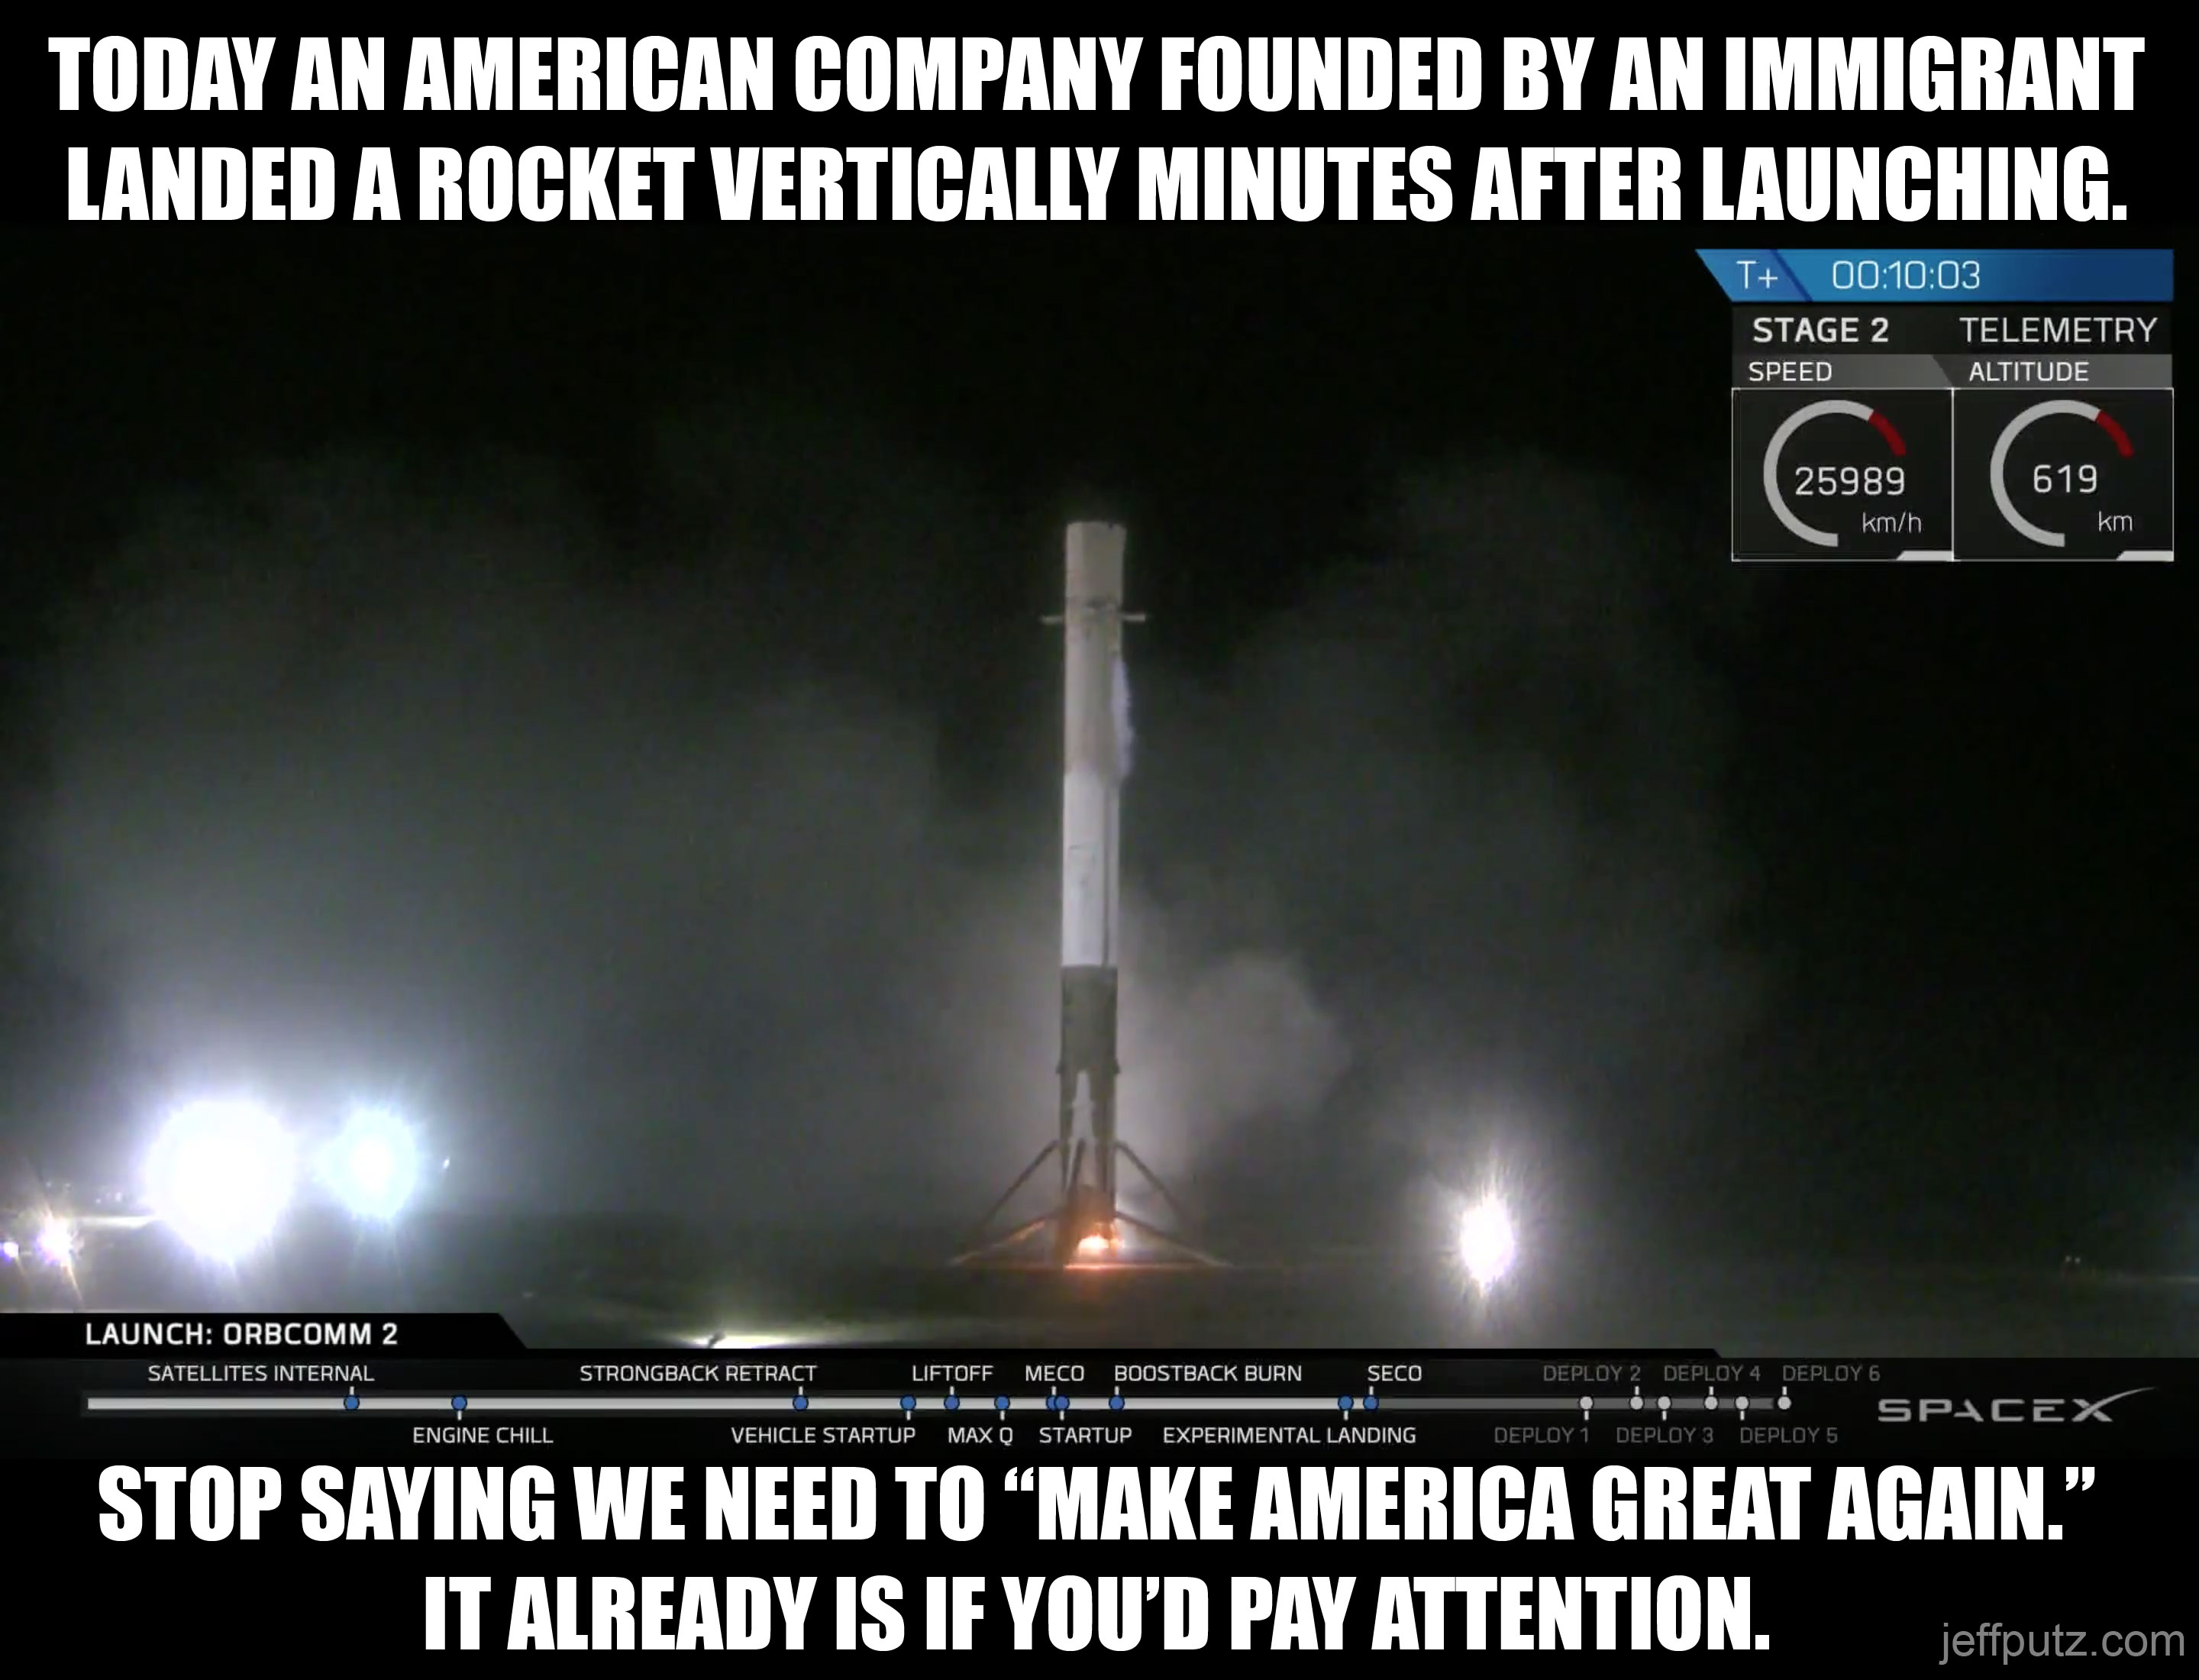 Today an American company founded by an immigrant landed a rocket vertically minutes after launching. Stop saying we need to 'make America great again.' It already is if you'd pay attention.